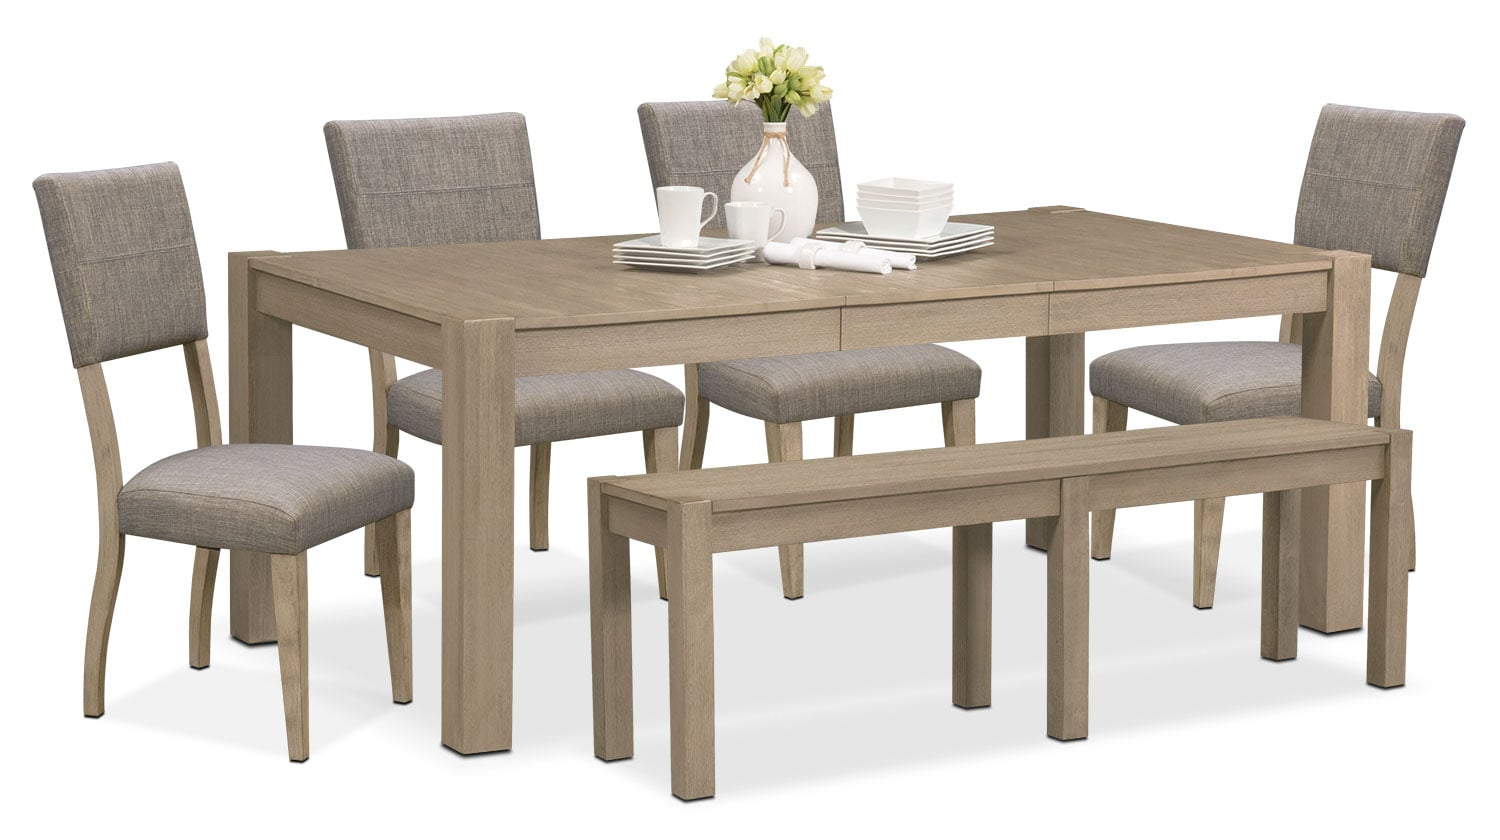 Tribeca table 4 upholstered side chairs and bench gray american signature furniture - Side table dining room ...